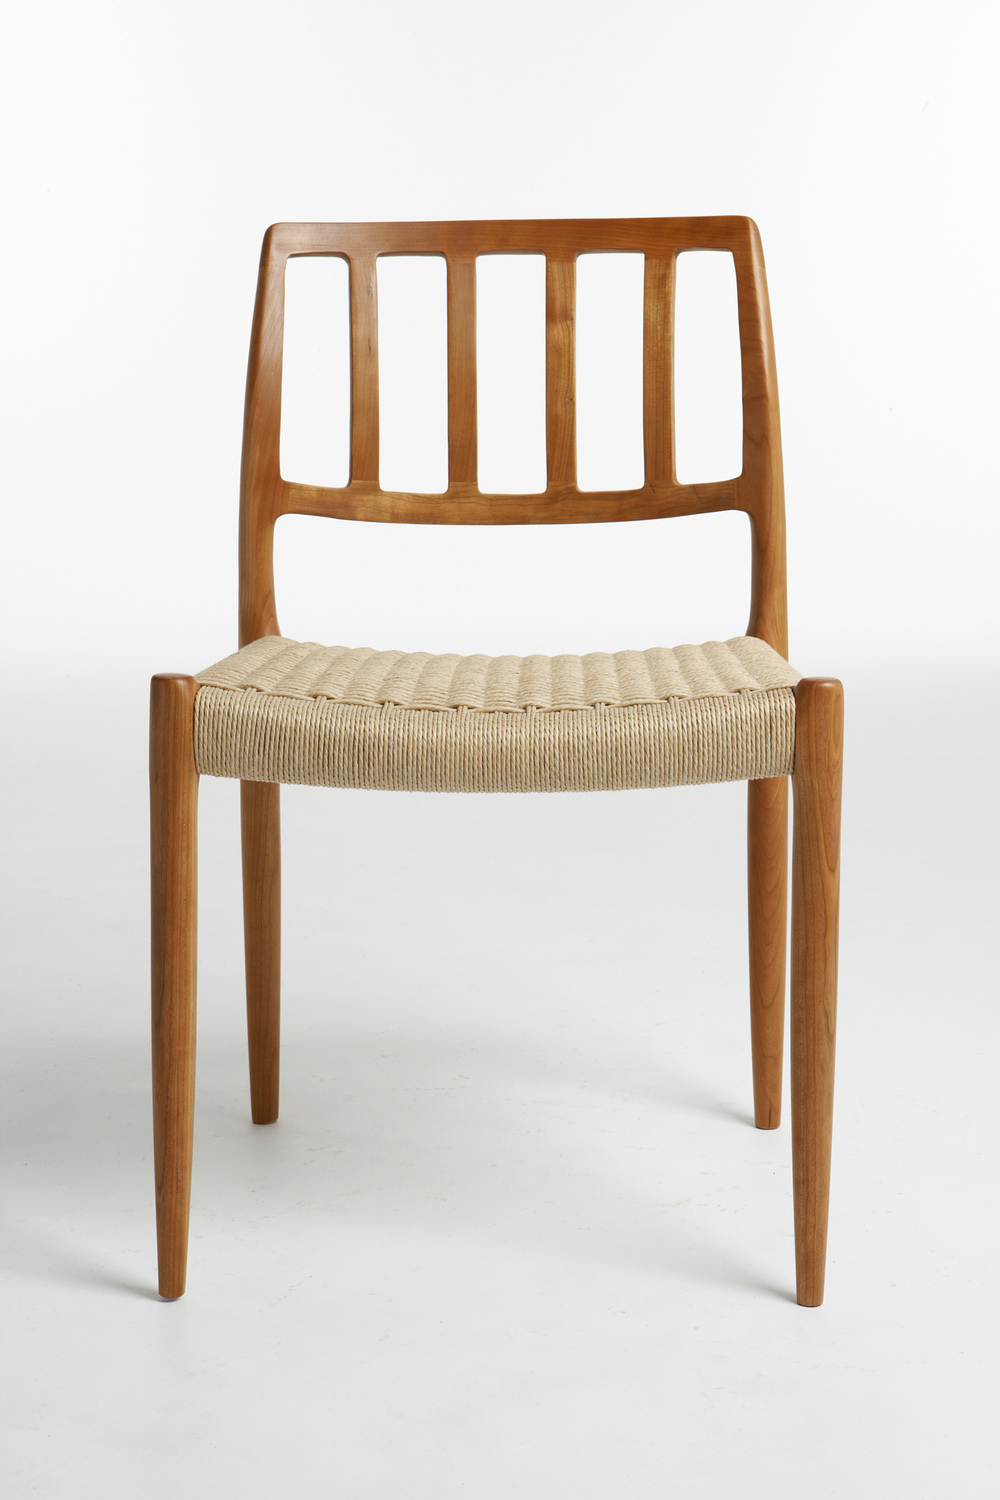 N O Moller 1974 Dining Chair